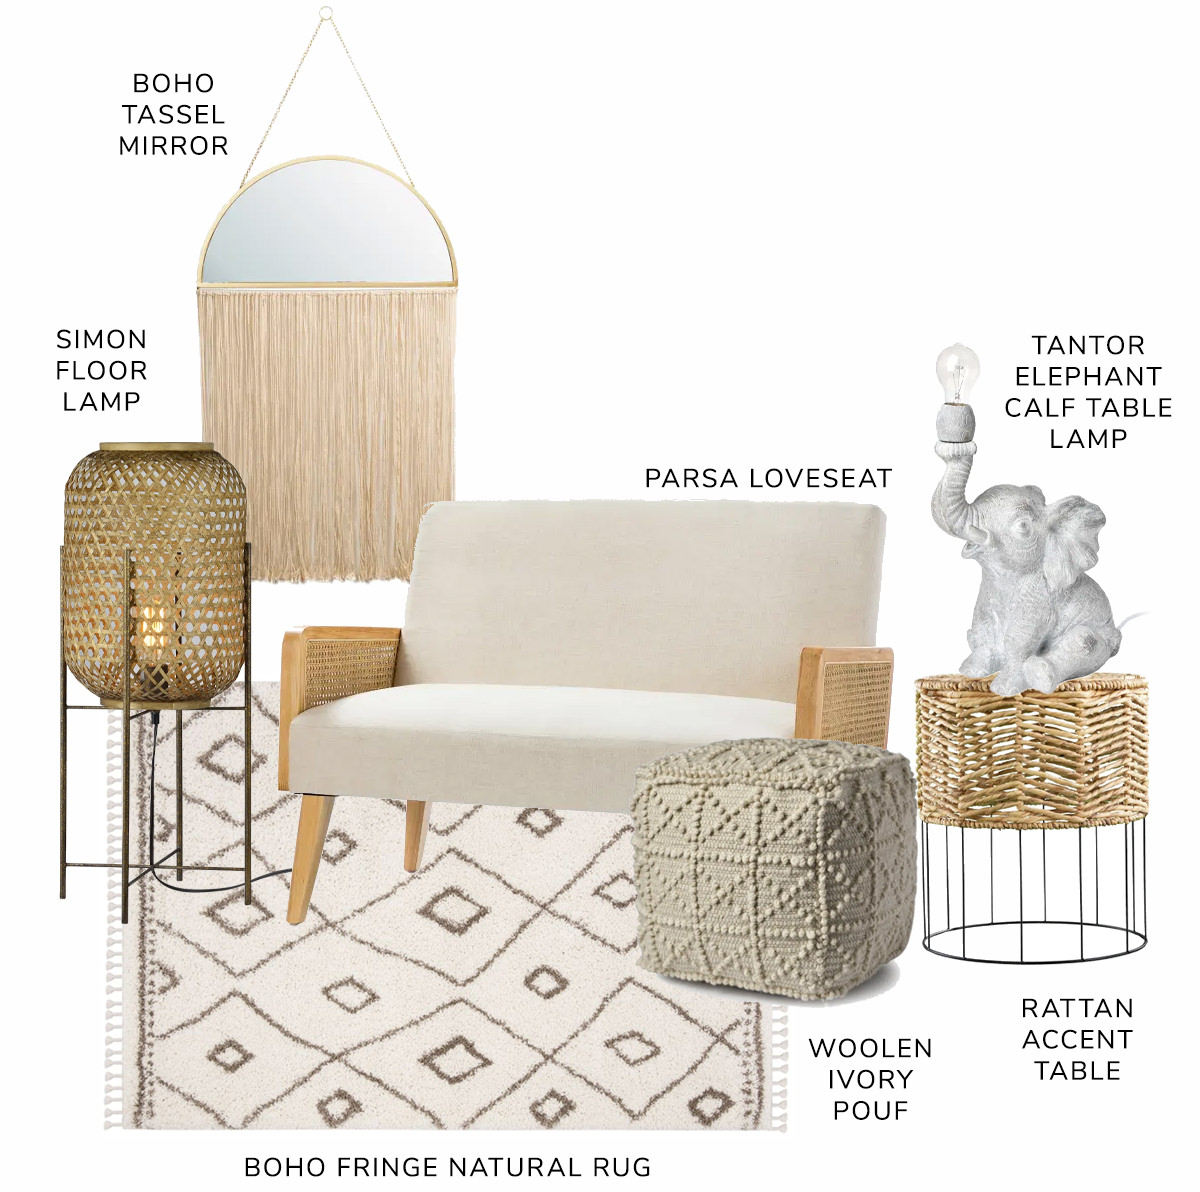 Parsa Arm Loveseat, Philadelphia Accent Table, Leroy Ivory Wool Popcorn Detail Sqaure Pouf, Boho Fringe Ivory and Natural Shag, Simon Floor Lamp, Regency Modern/Boho Metal With Tassels Hanging Semicircle Wall Mirror,Tantor Elephant Calf Table Lamp   SHOP NOW